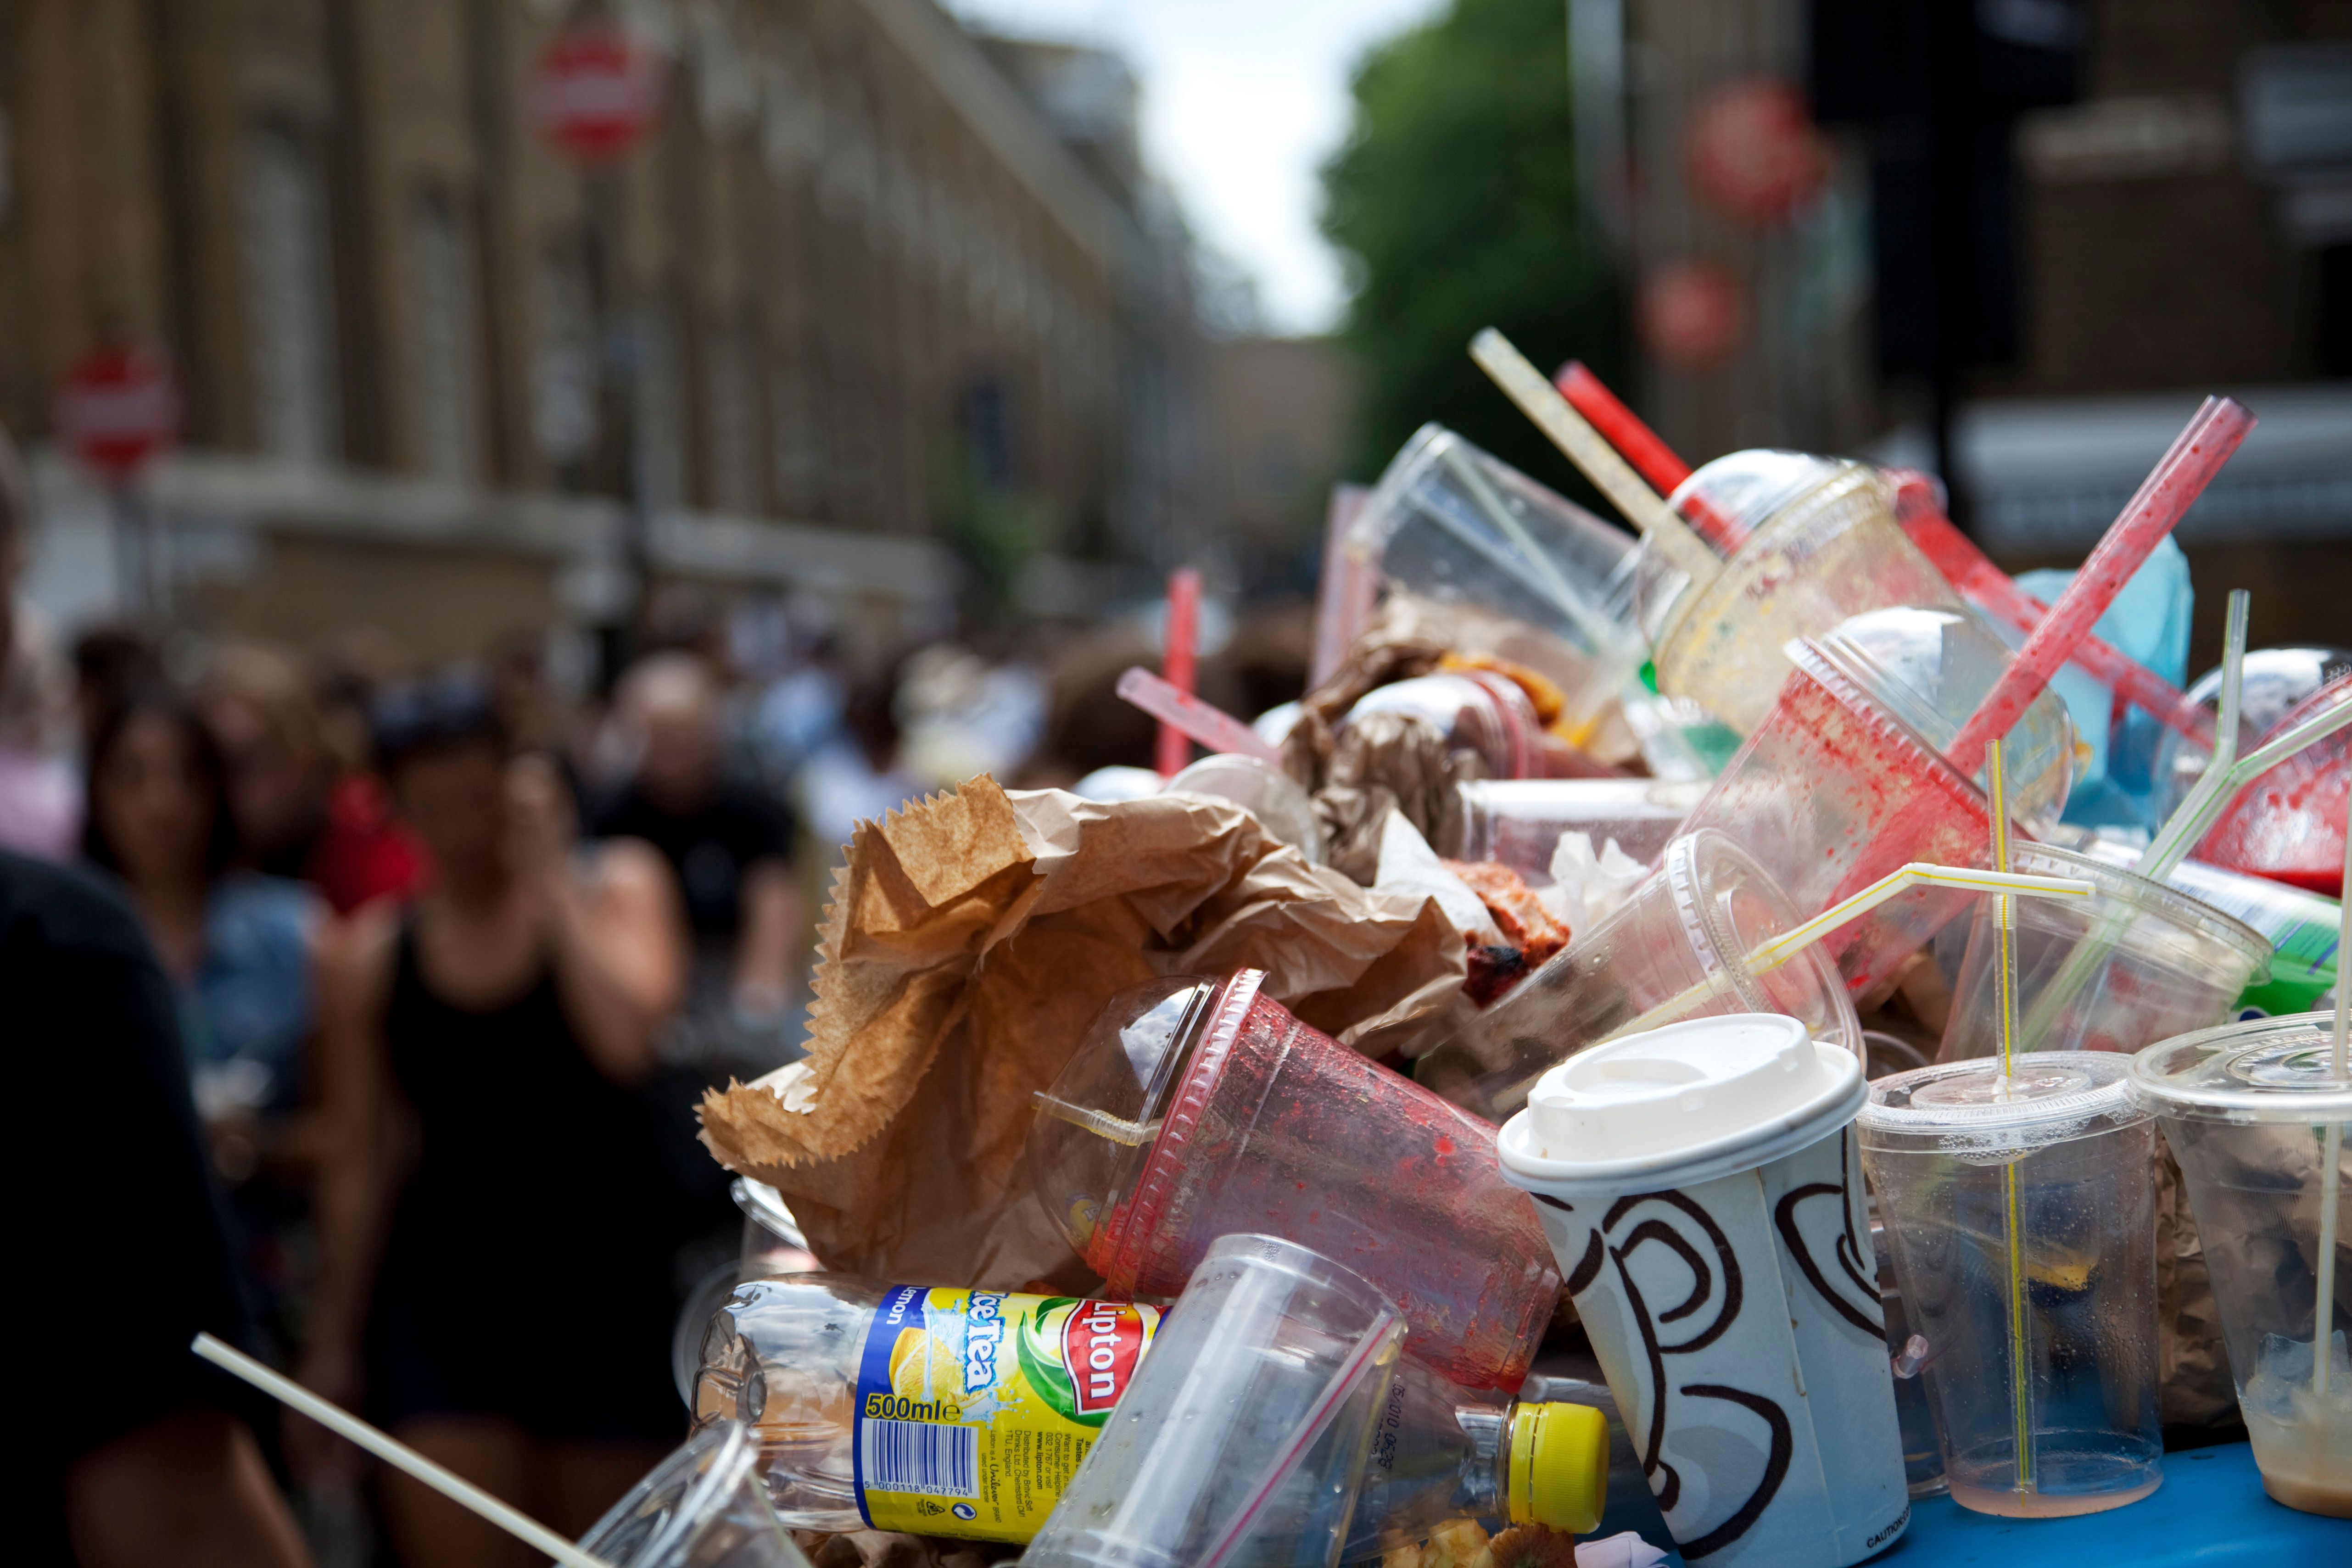 Rubbish overflows the bins on Brick Lane Market. Extreme amounts of plastic and paper trash litter the streets. This market is a weekly event in London's East End. (Photo by In Pictures Ltd./Corbis via Getty Images)